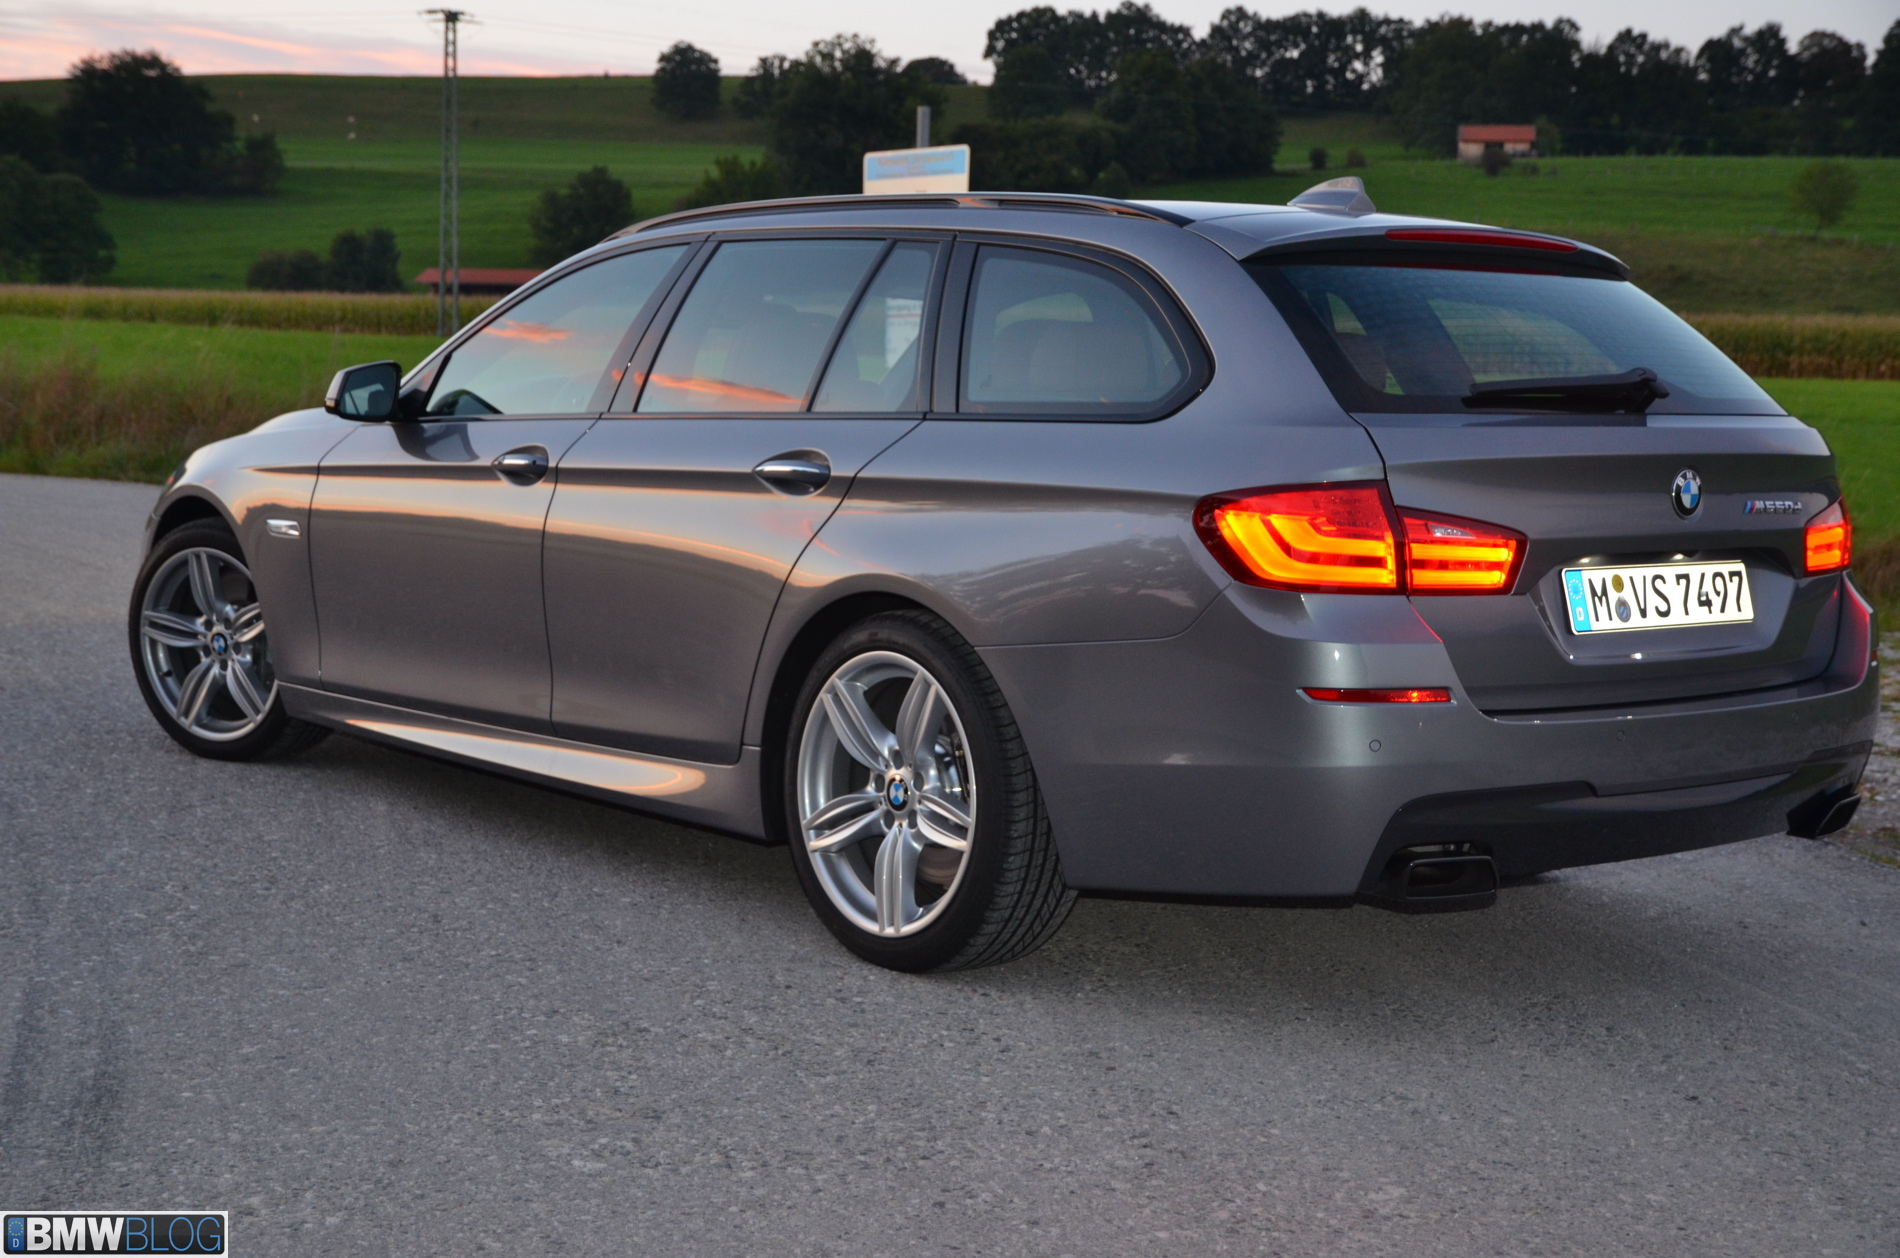 2013 bmw m550d xdrive touring. Black Bedroom Furniture Sets. Home Design Ideas